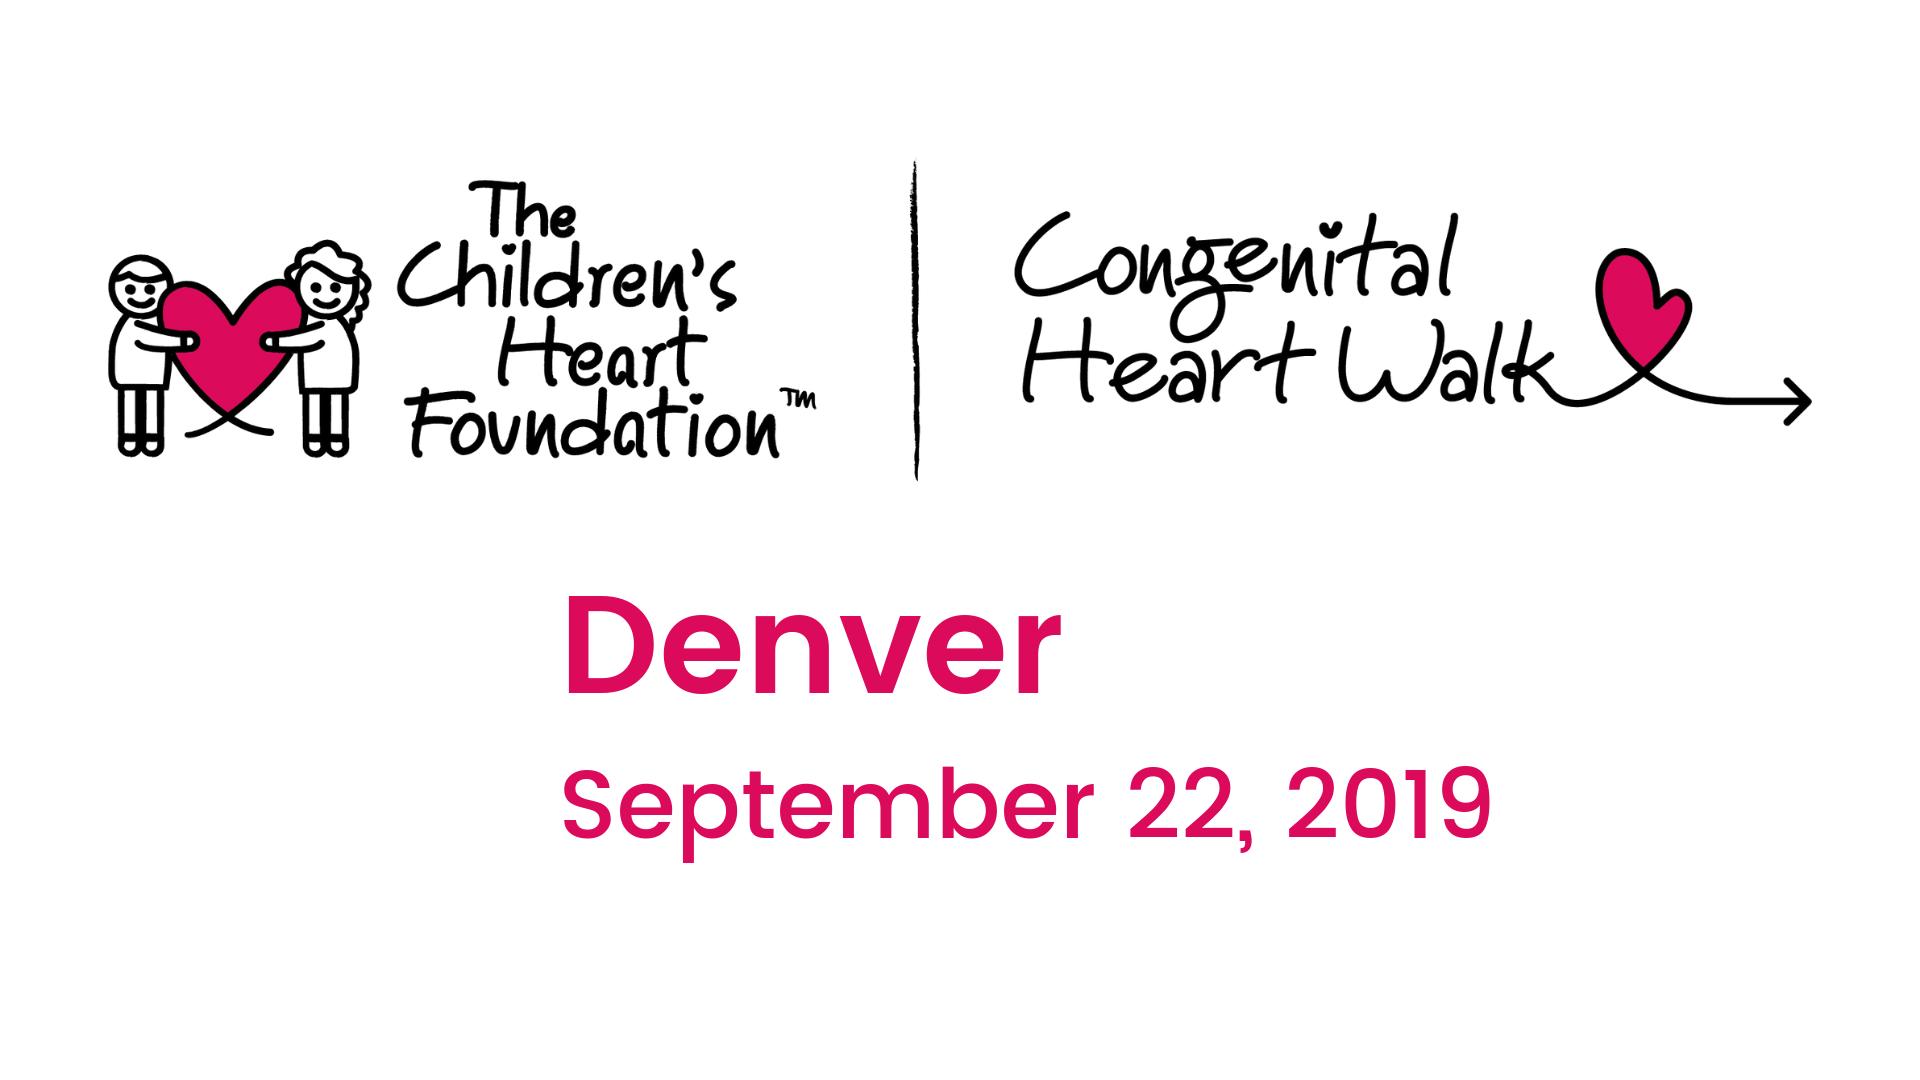 Denver Congenital Heart Walk (Colorado)